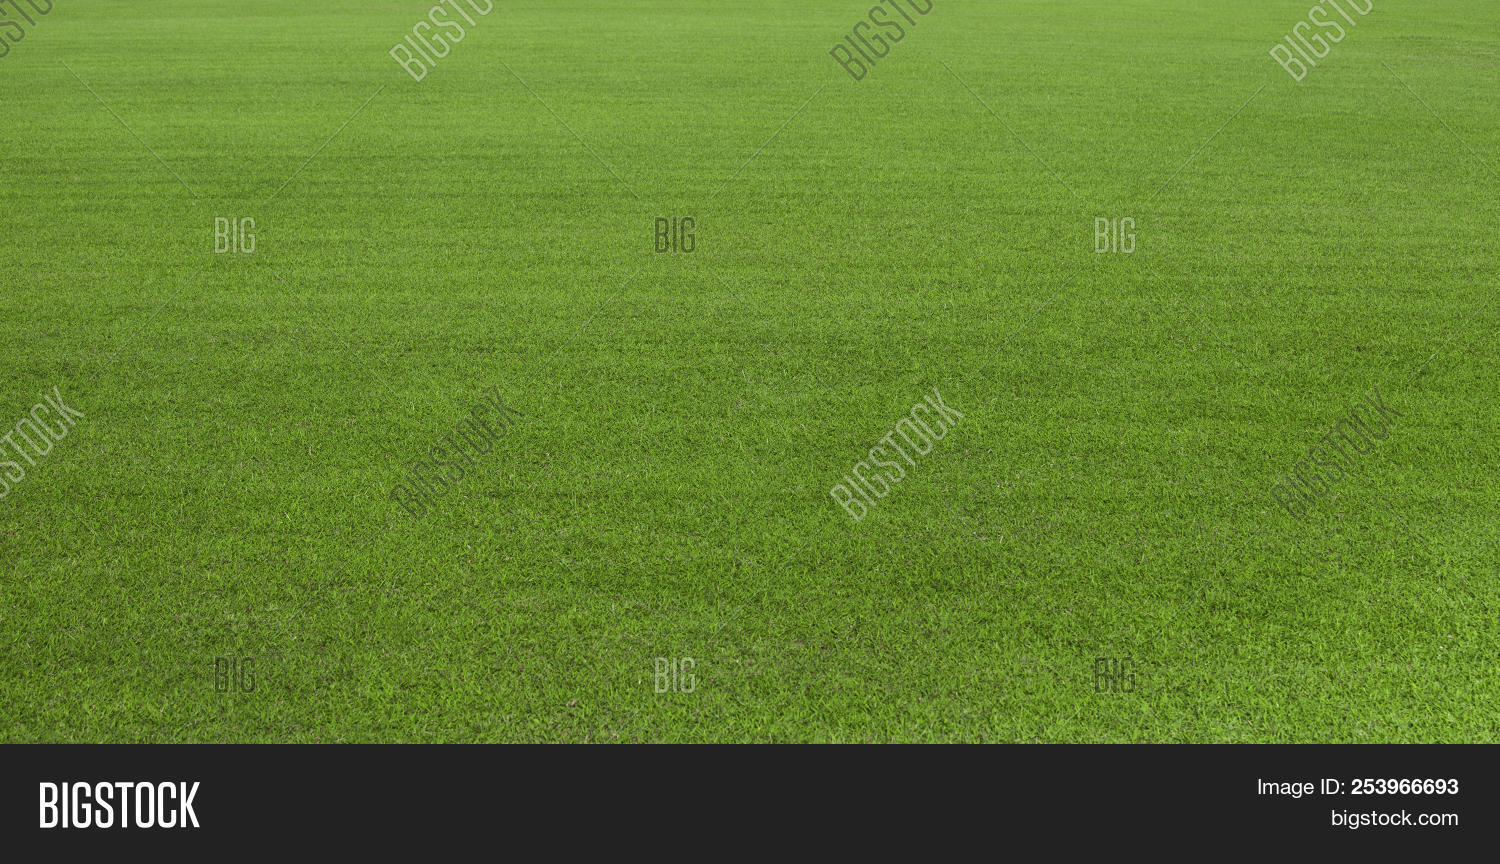 activity,aristocratic,backdrop,background,ball,beautiful,blade,blue,clean,club,copy,course,empty,field,football,fresh,freshness,game,golf,golfing,grass,green,greenery,grounds,grow,growth,land,landscape,lawn,leisure,lifestyle,meadow,nature,outdoor,pattern,perfection,person,plant,play,player,putting,recreation,recreational,space,sport,text,texture